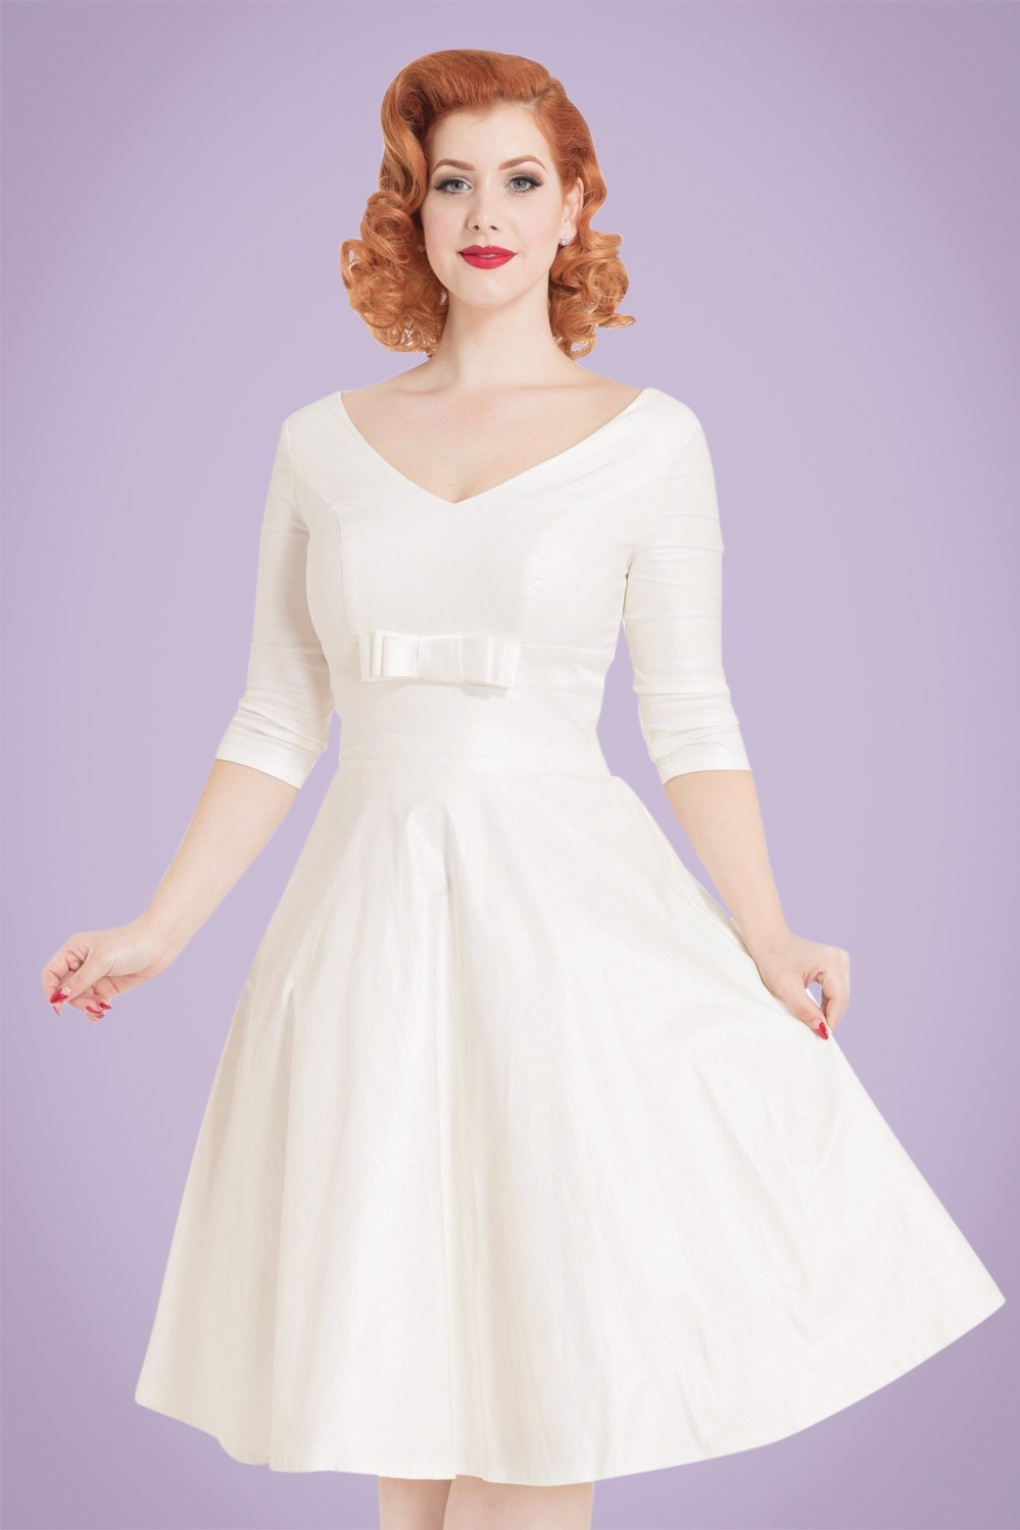 Vintage Inspired Wedding Dresses 50s Dorothy Bridal Swing Dress in Ivory £127.50 AT vintagedancer.com